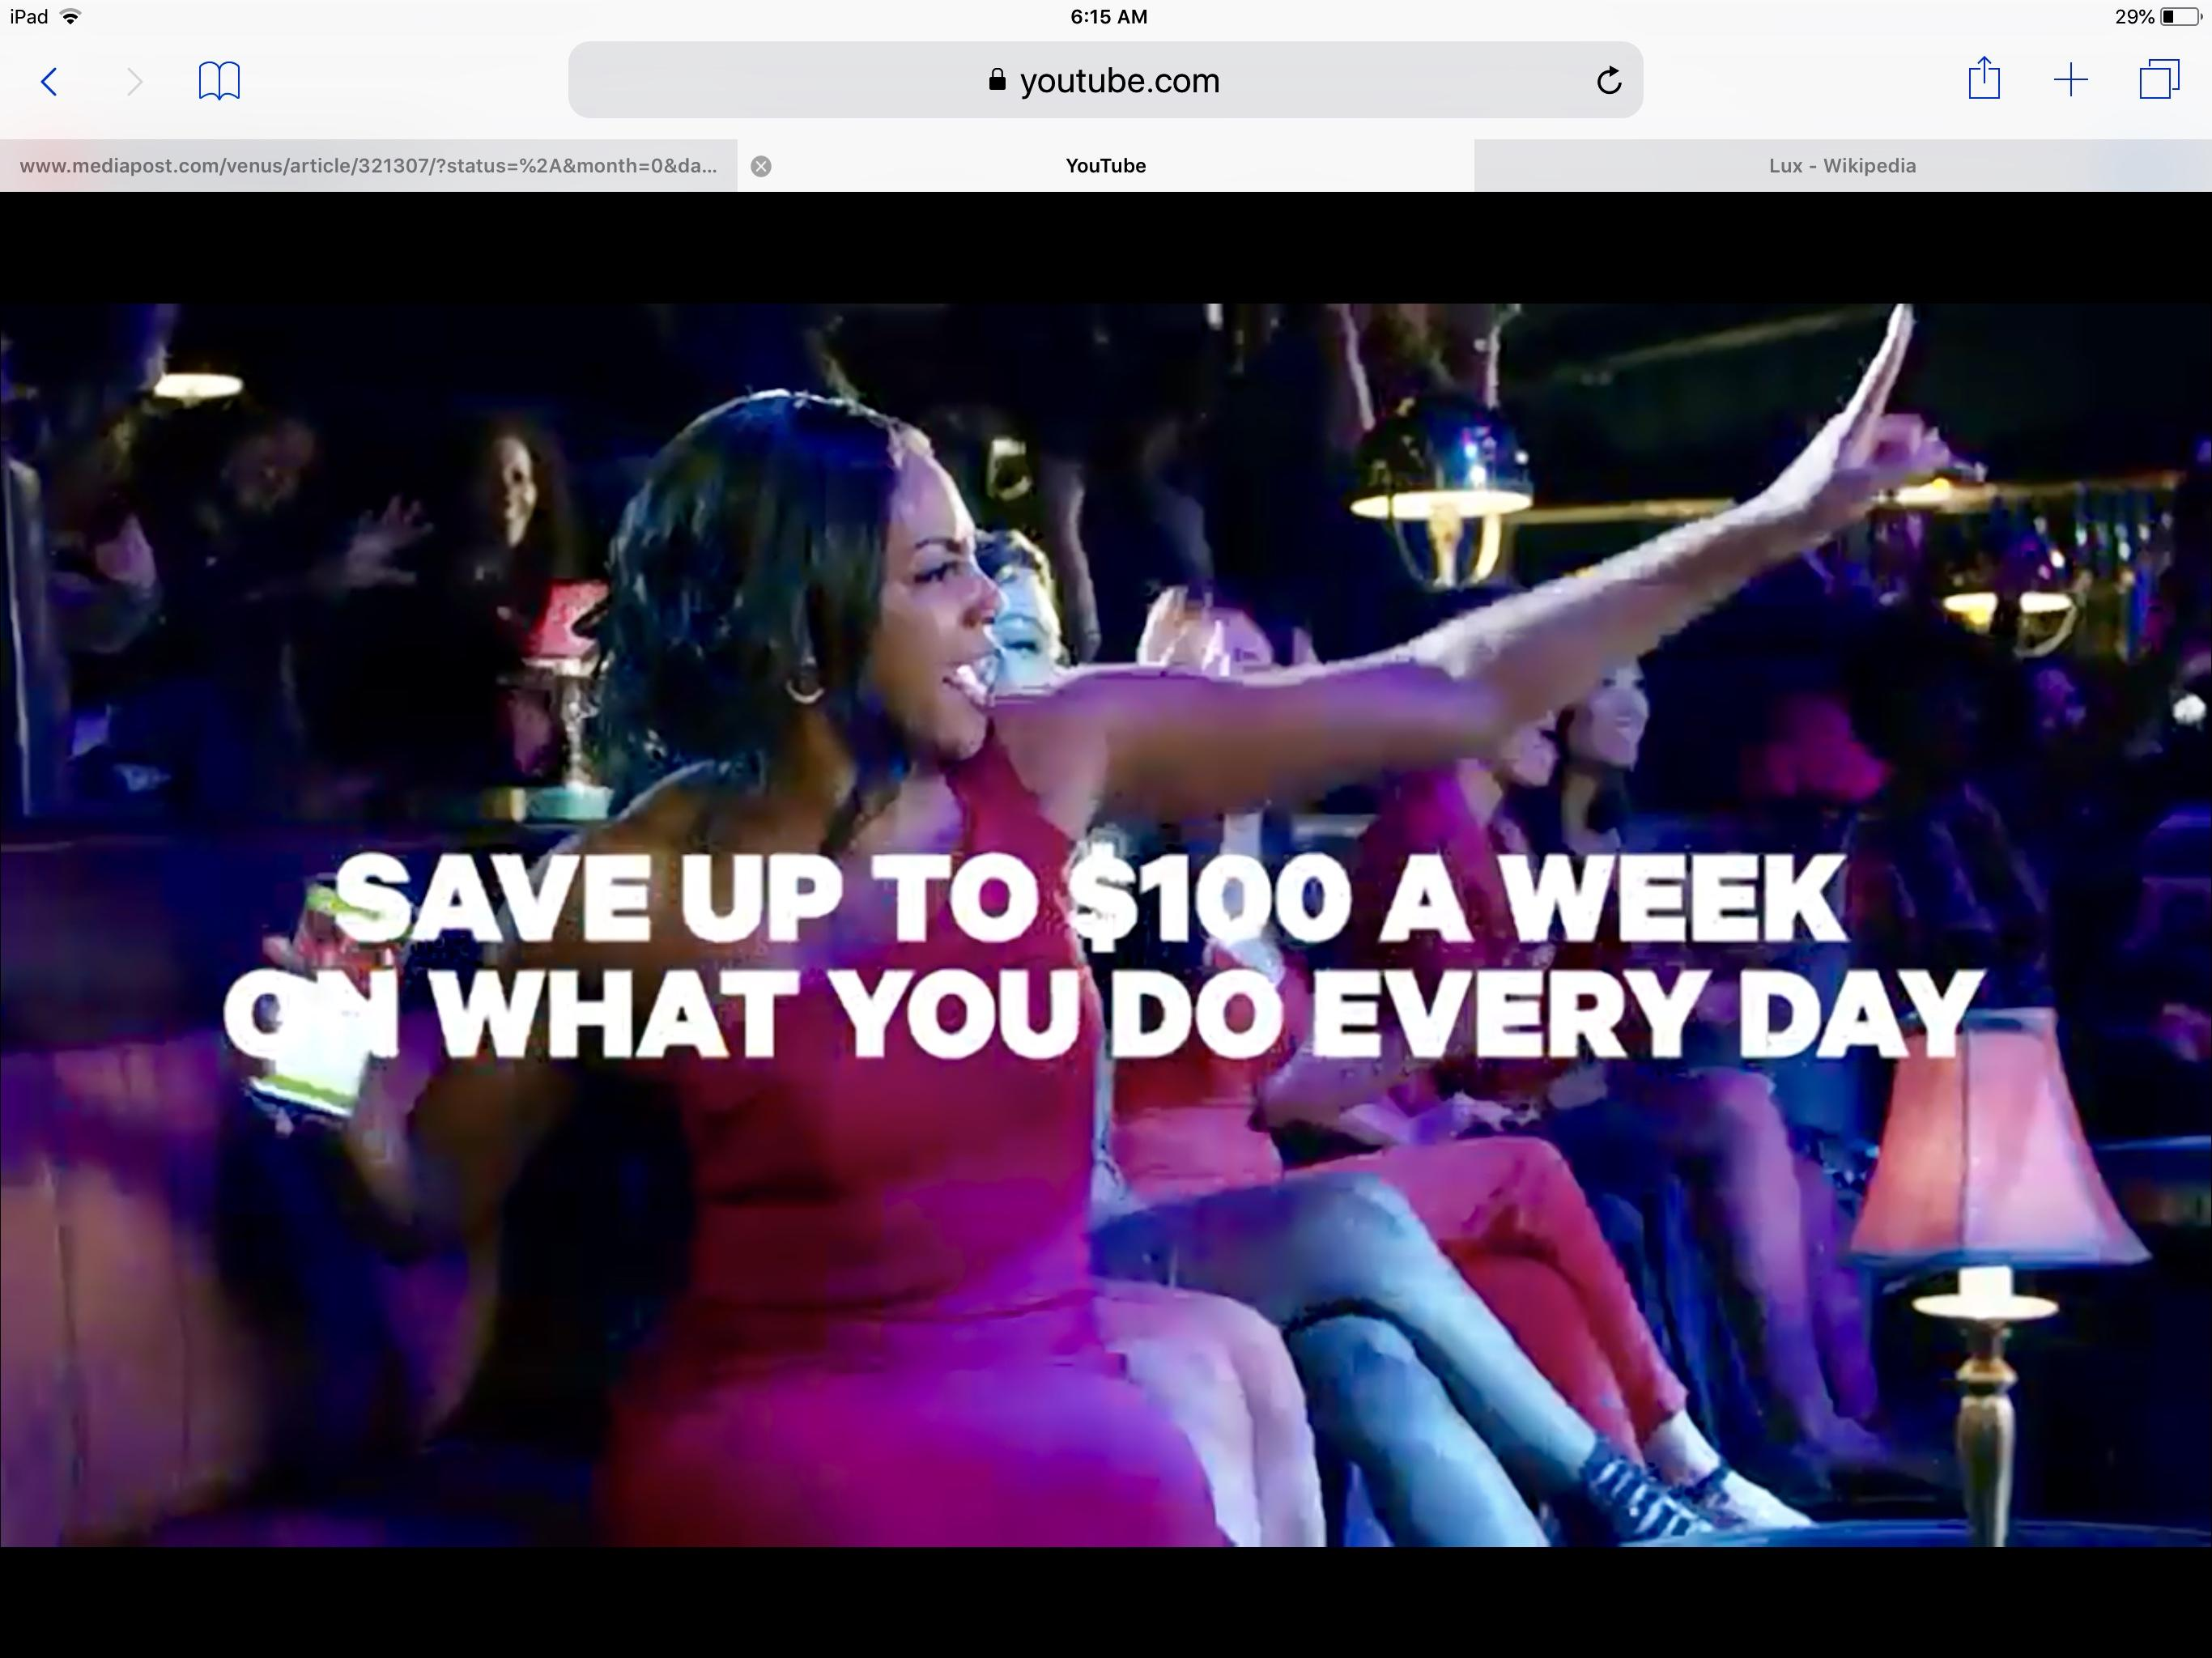 Funny Lady Haddish Stars In New Groupon Ads 06/26/2018